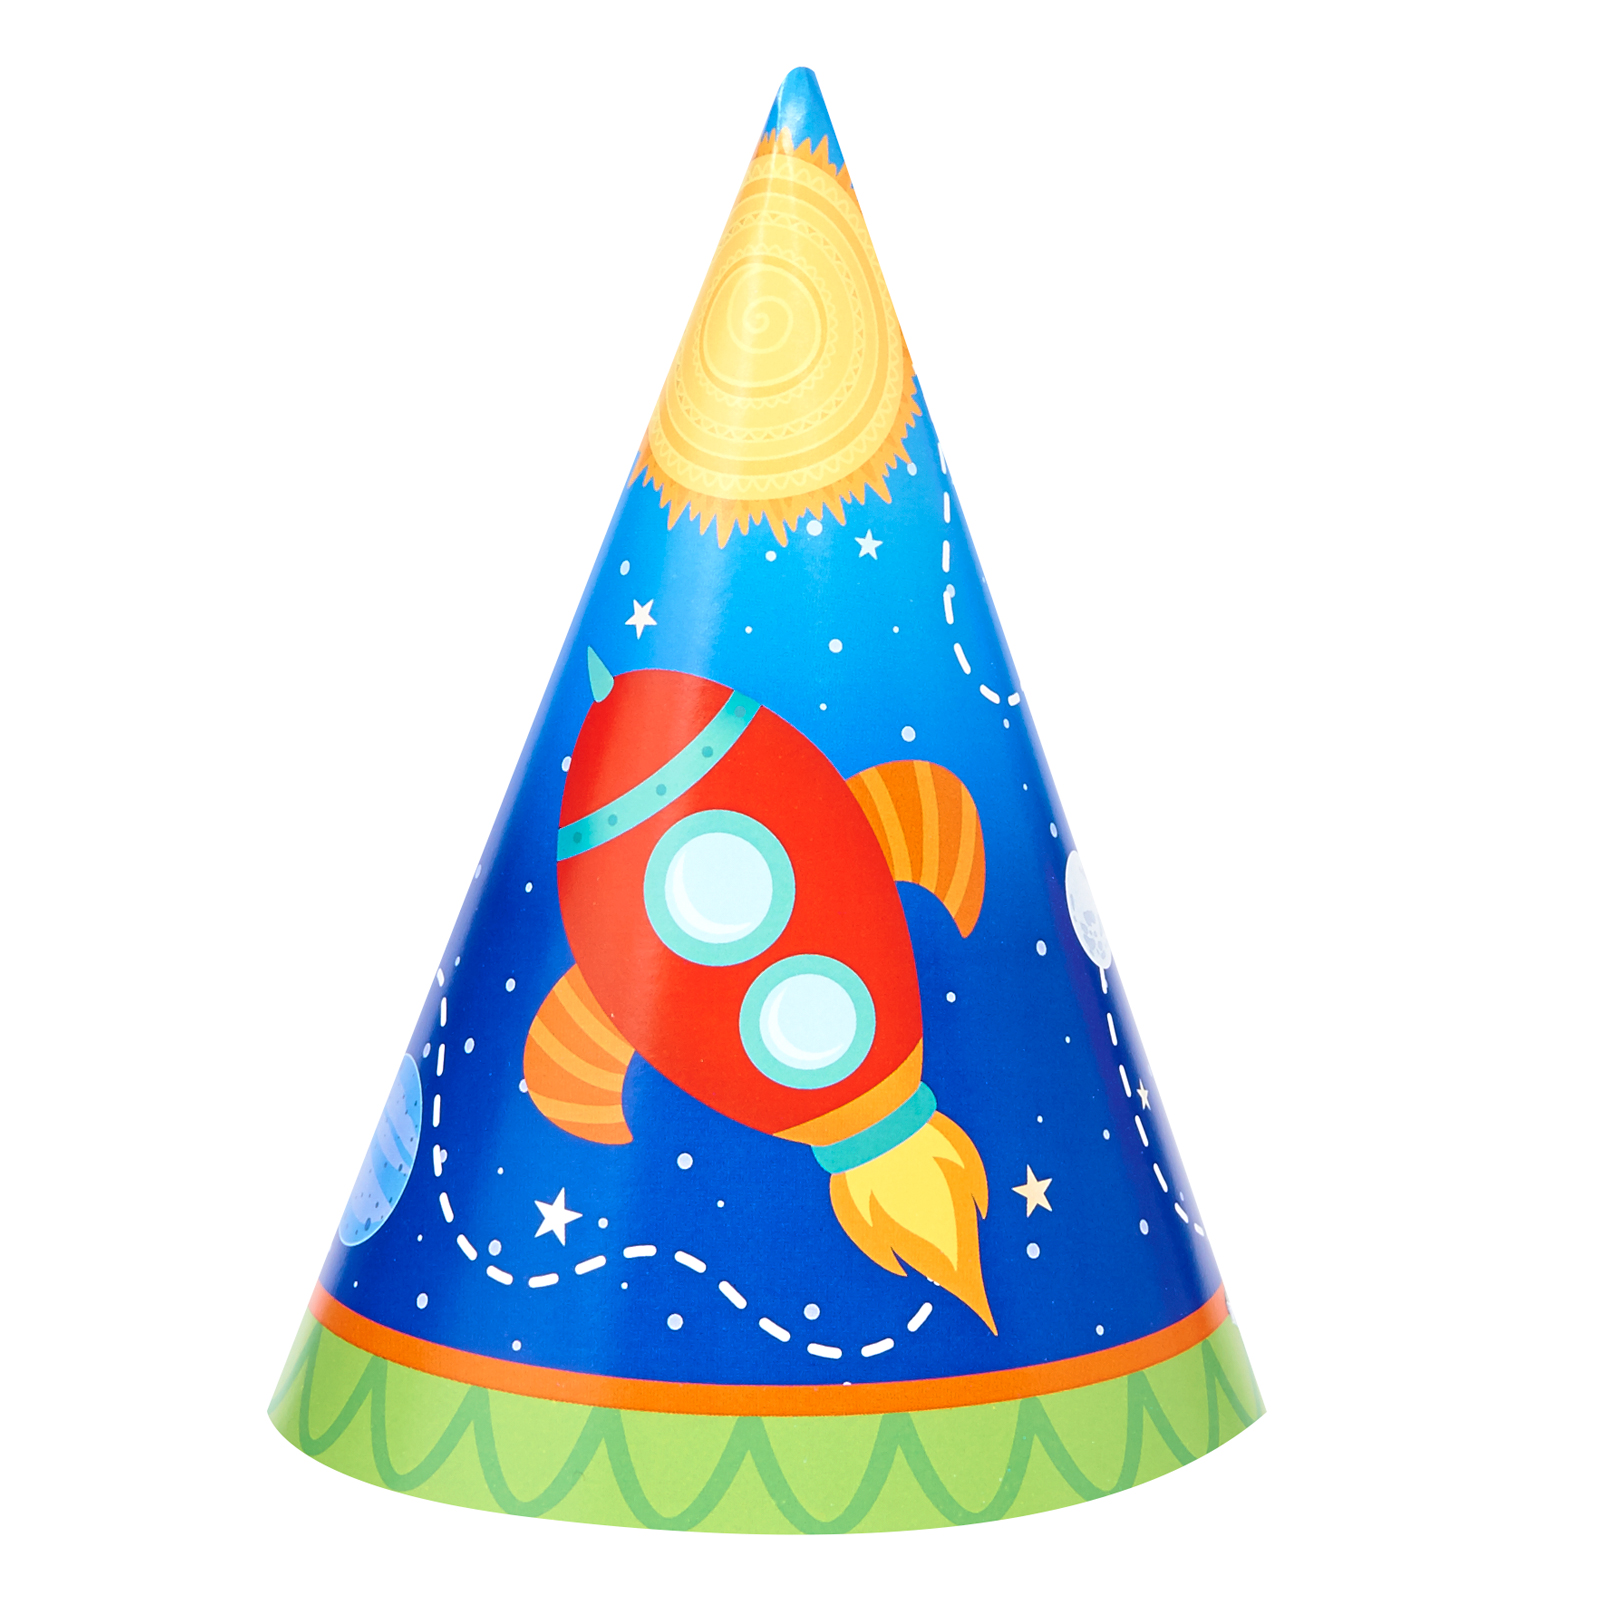 Rocket To Space Party Supplies 16 Pack Cone Party Hats